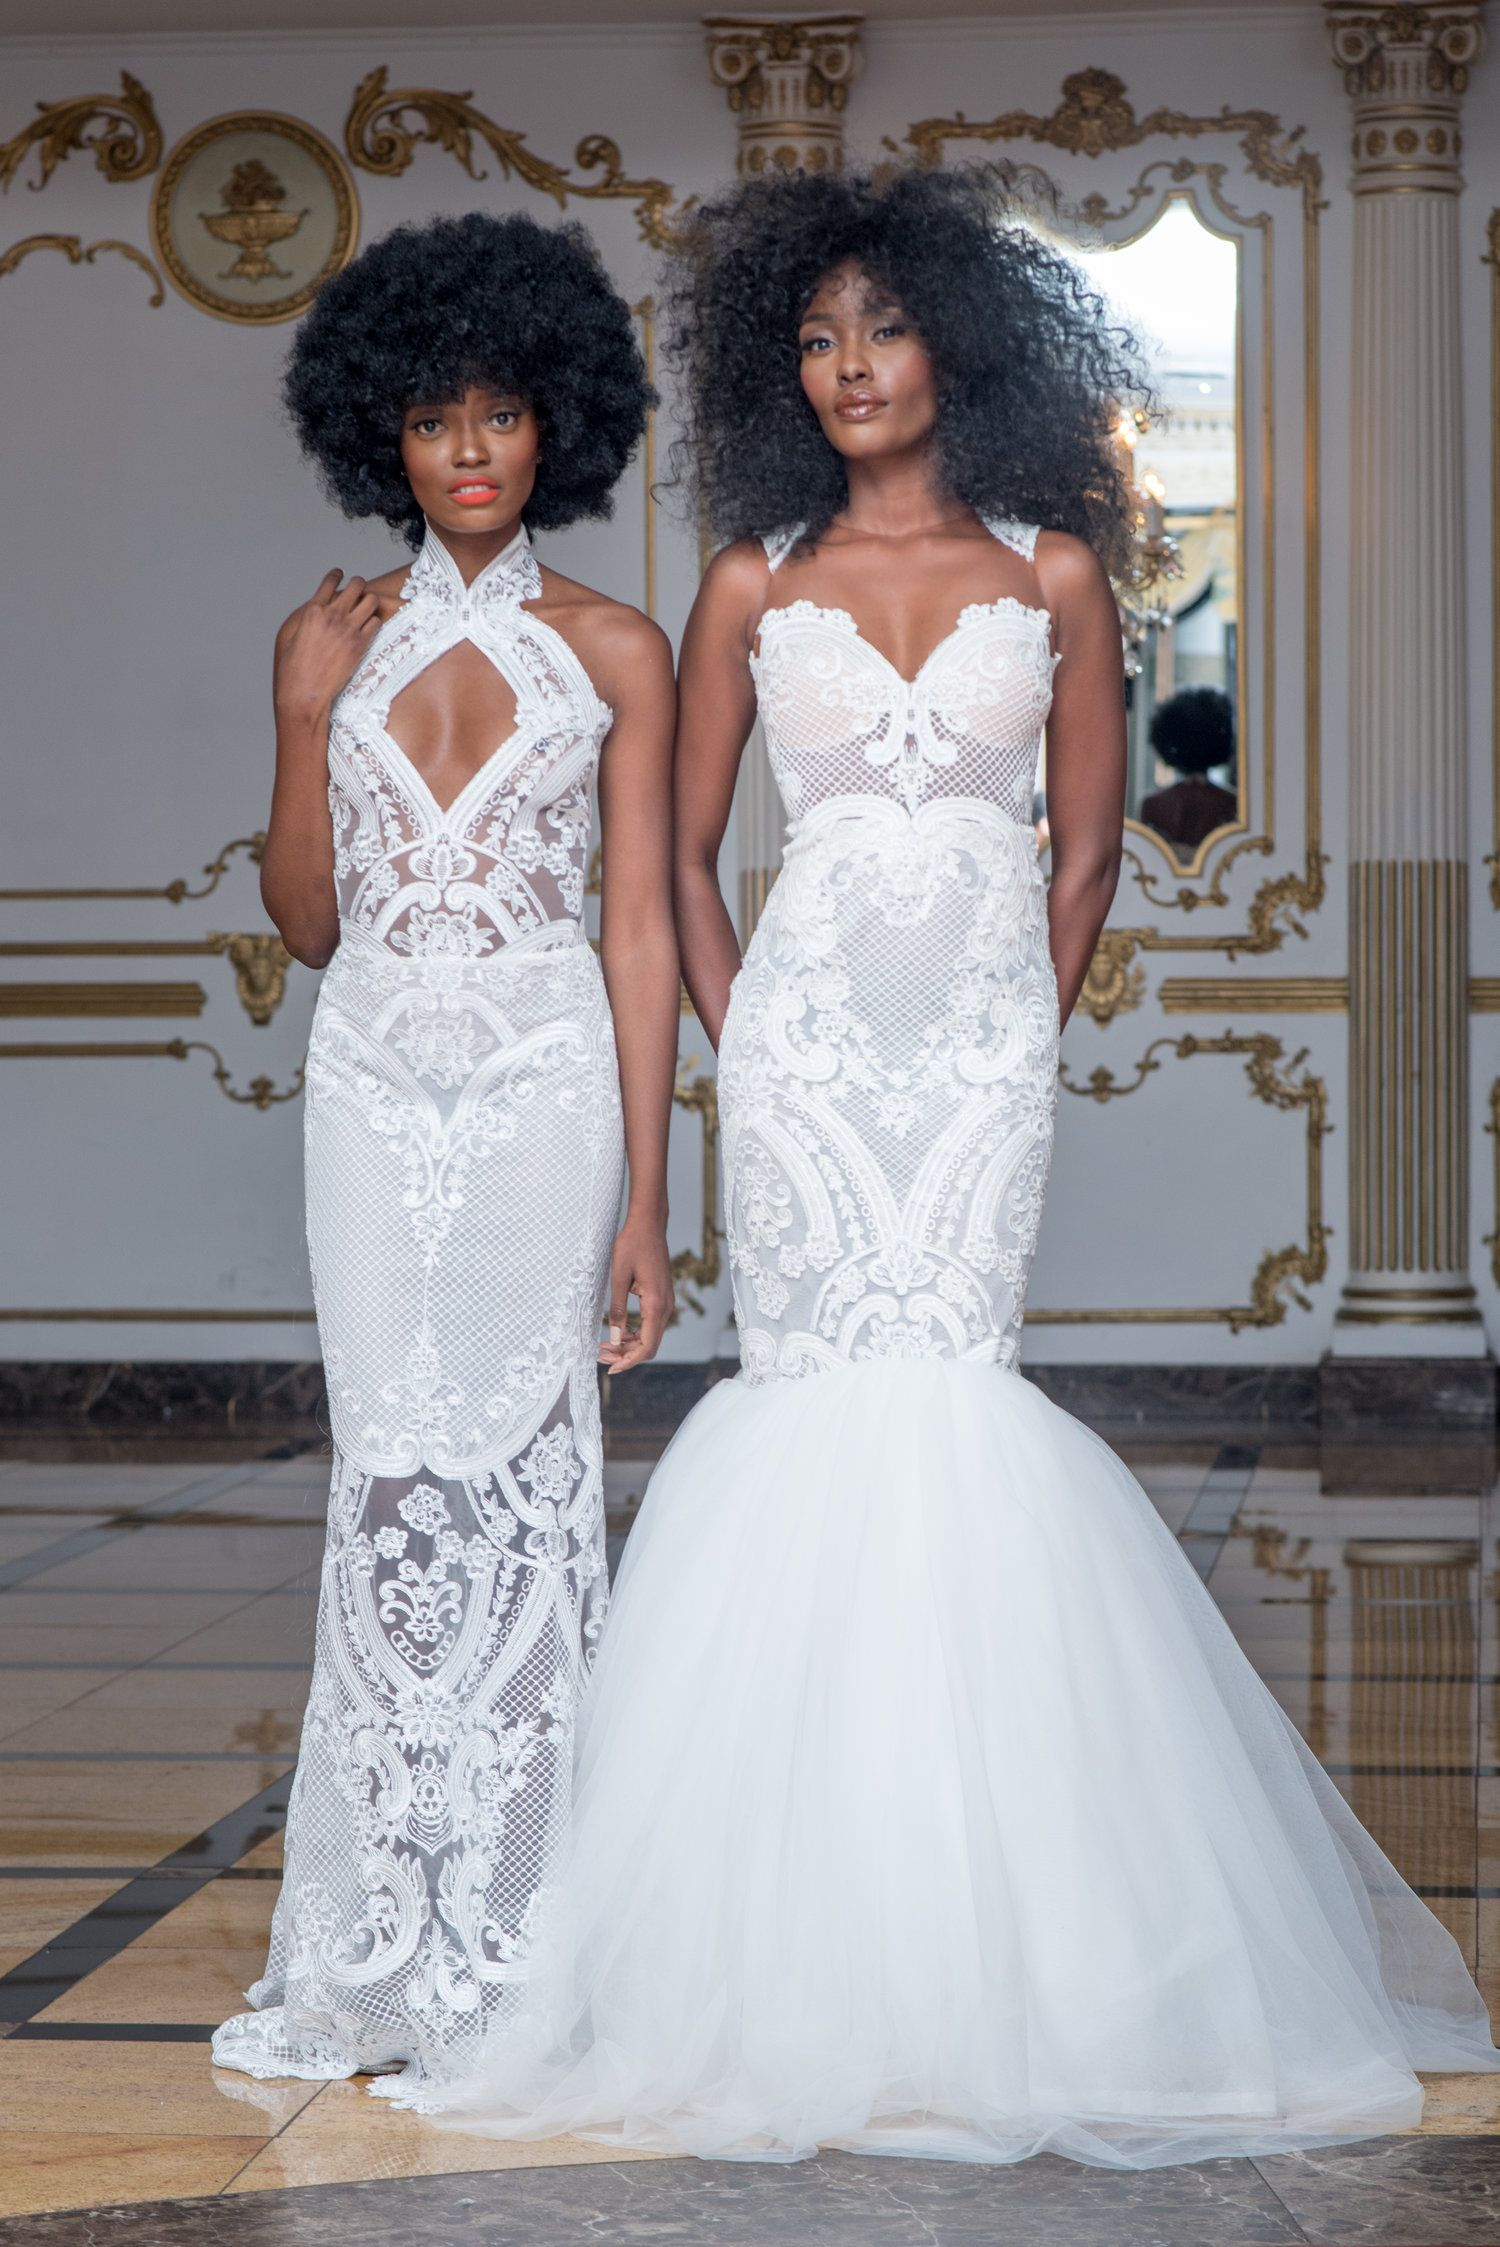 Pantora Bridal Custom Bridal Wear Designer Owner Brooklyn New York Afro Caribbean Wedding